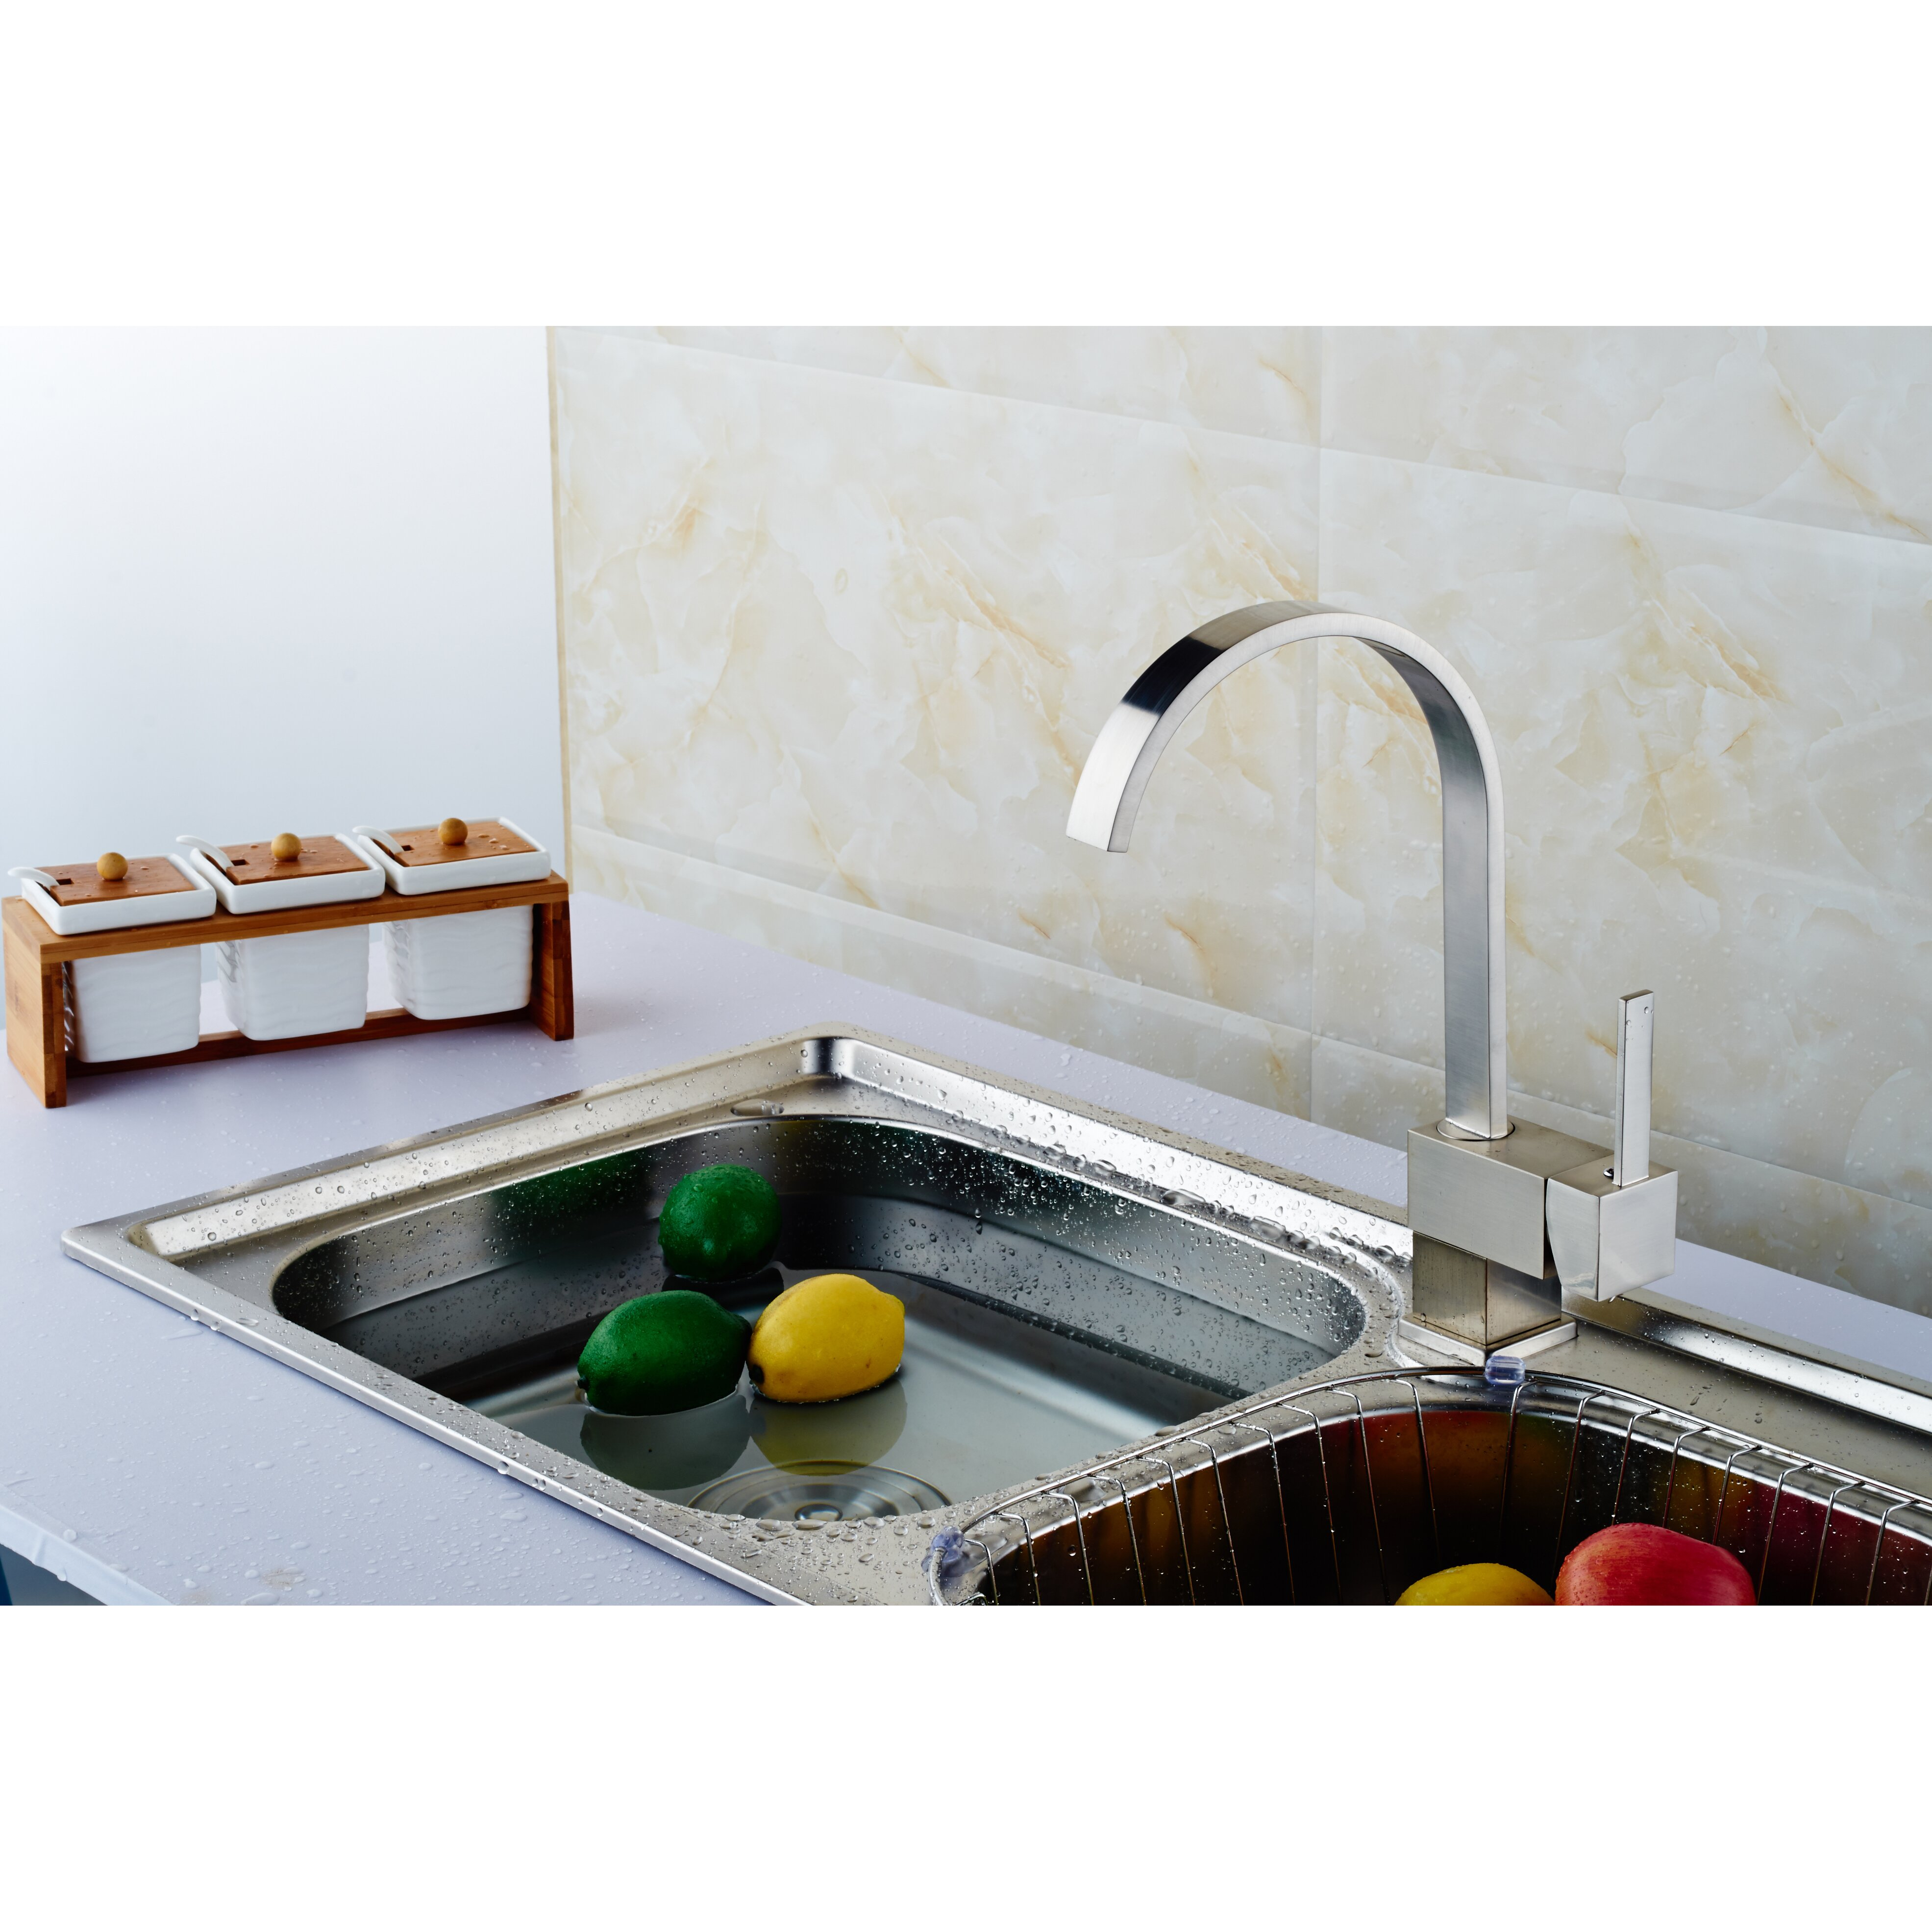 upscale designs by ema single handle deck mounted kitchen upscale designs by ema single handle deck mounted kitchen